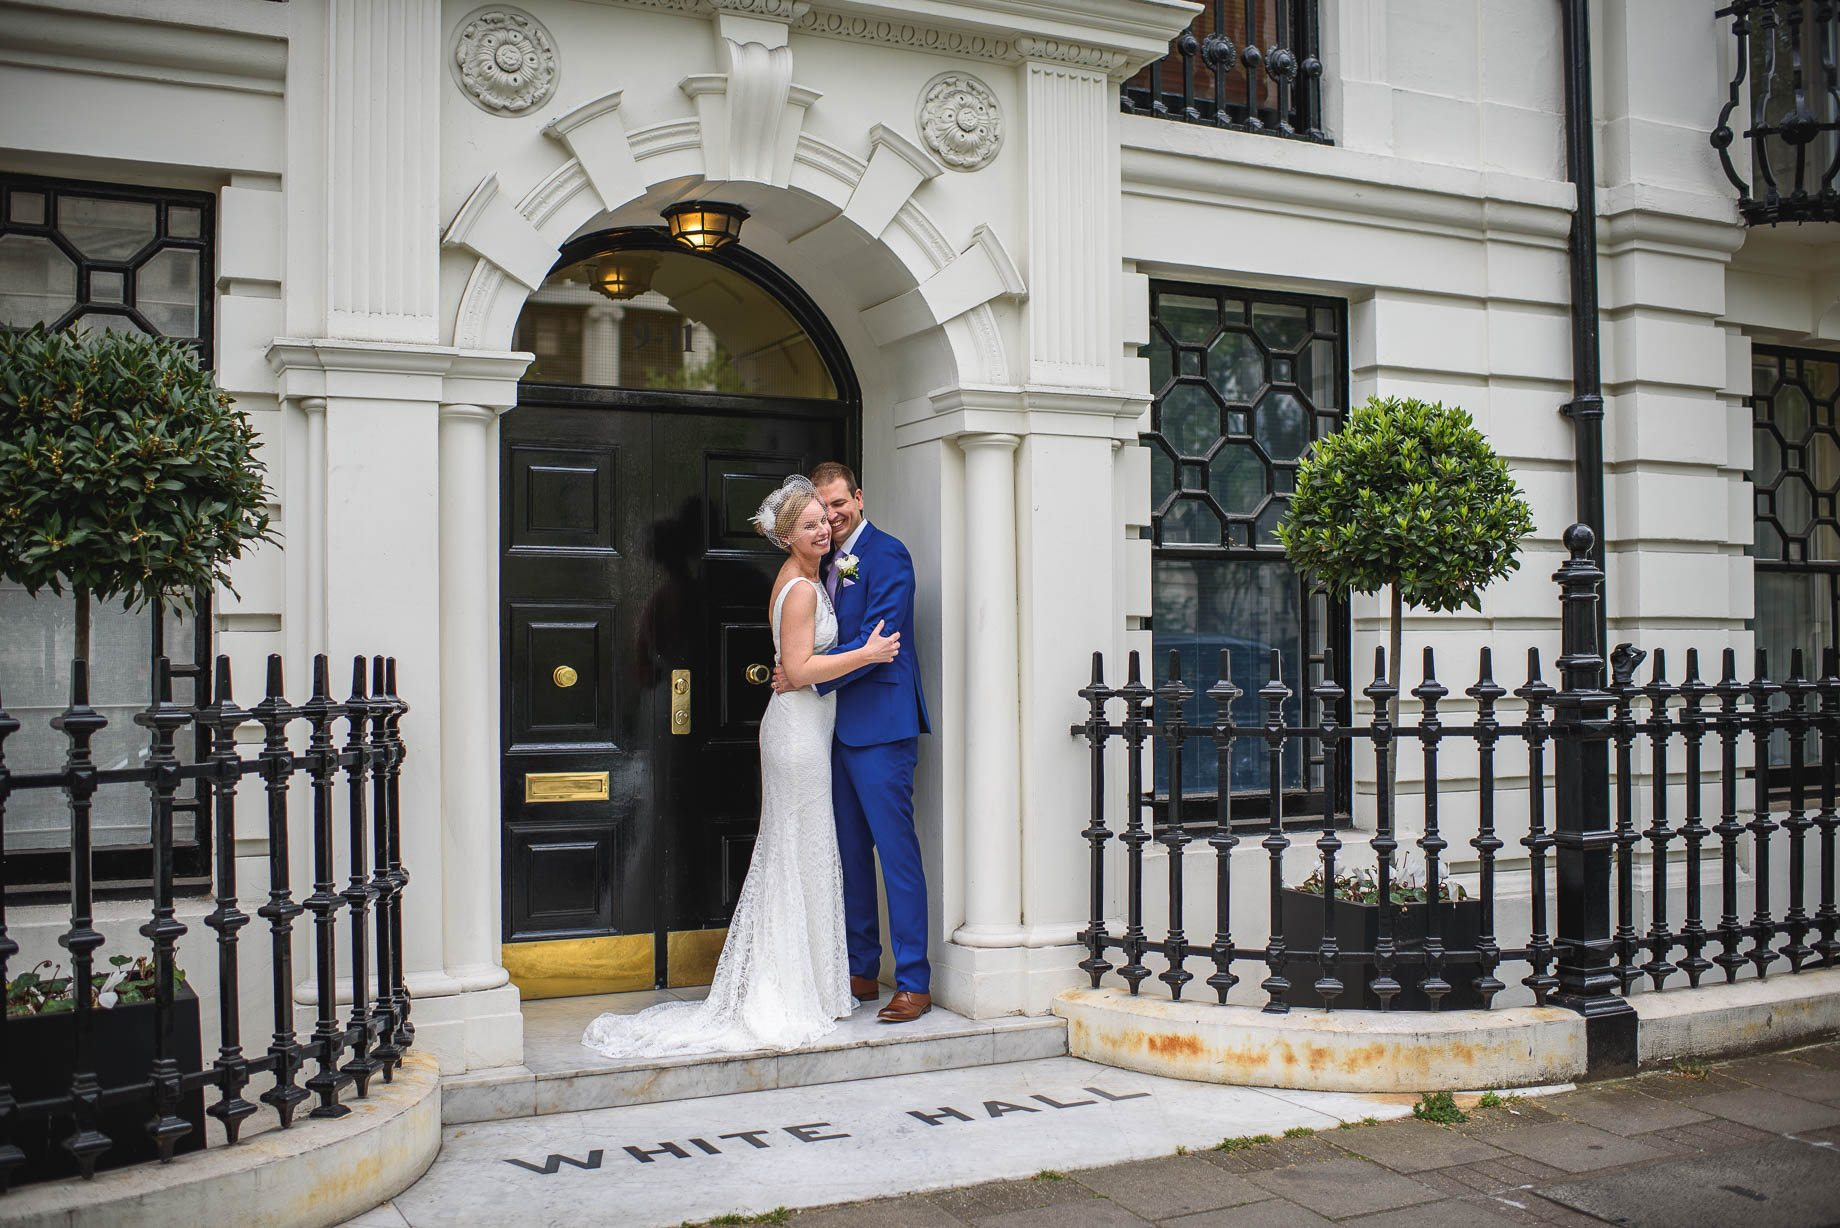 Bllomsbury House wedding photography in London - Katie and Taylor (79 of 156)